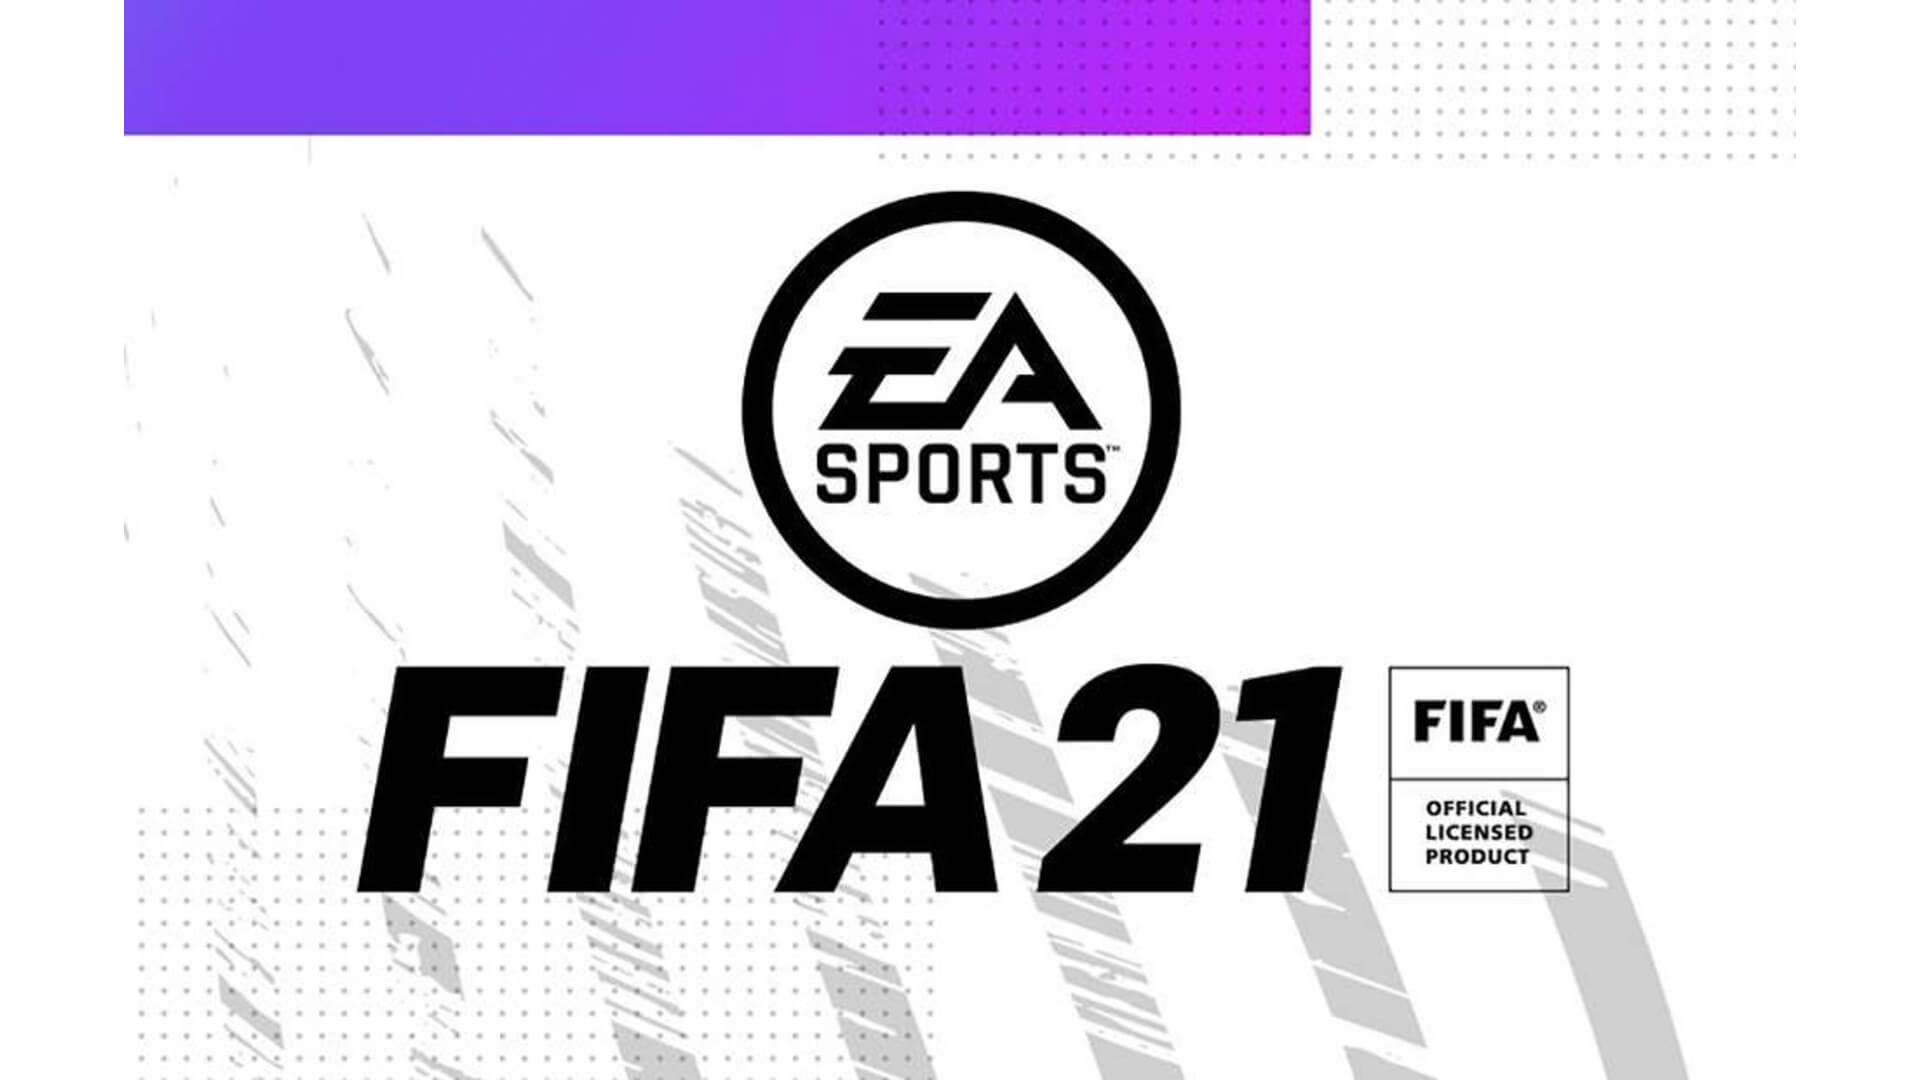 EA Temporarily Disables Content Granting On FIFA and Ultimate Team